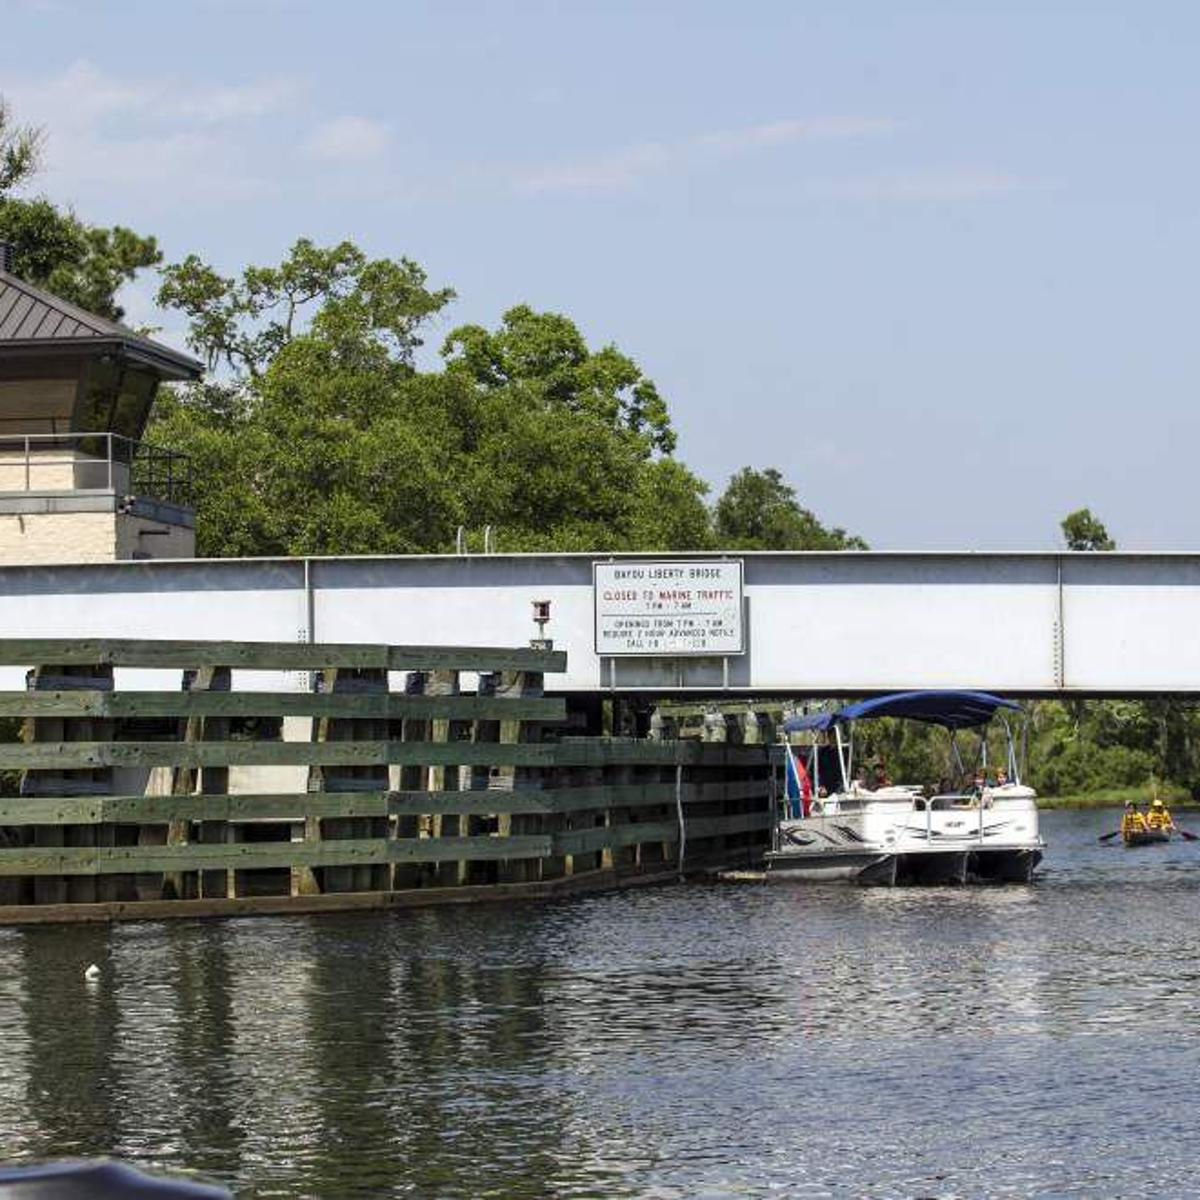 Bayou Liberty Road, Fairview-Riverside State Park reopen as high